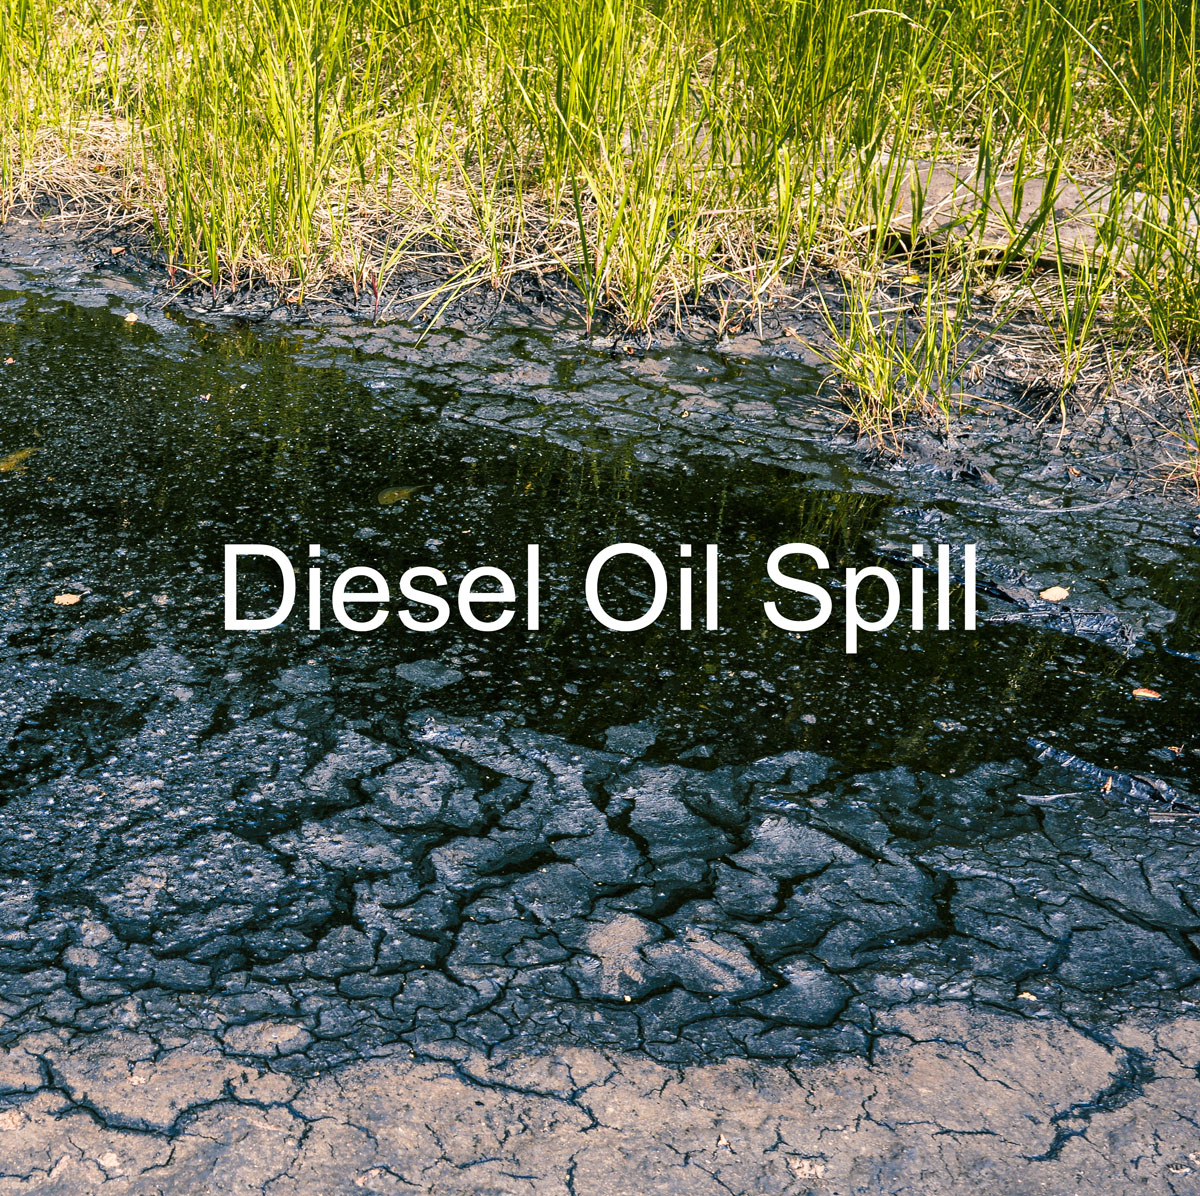 Diesel Oil Spill - Green Grass Surrounding the Dead area from the oil